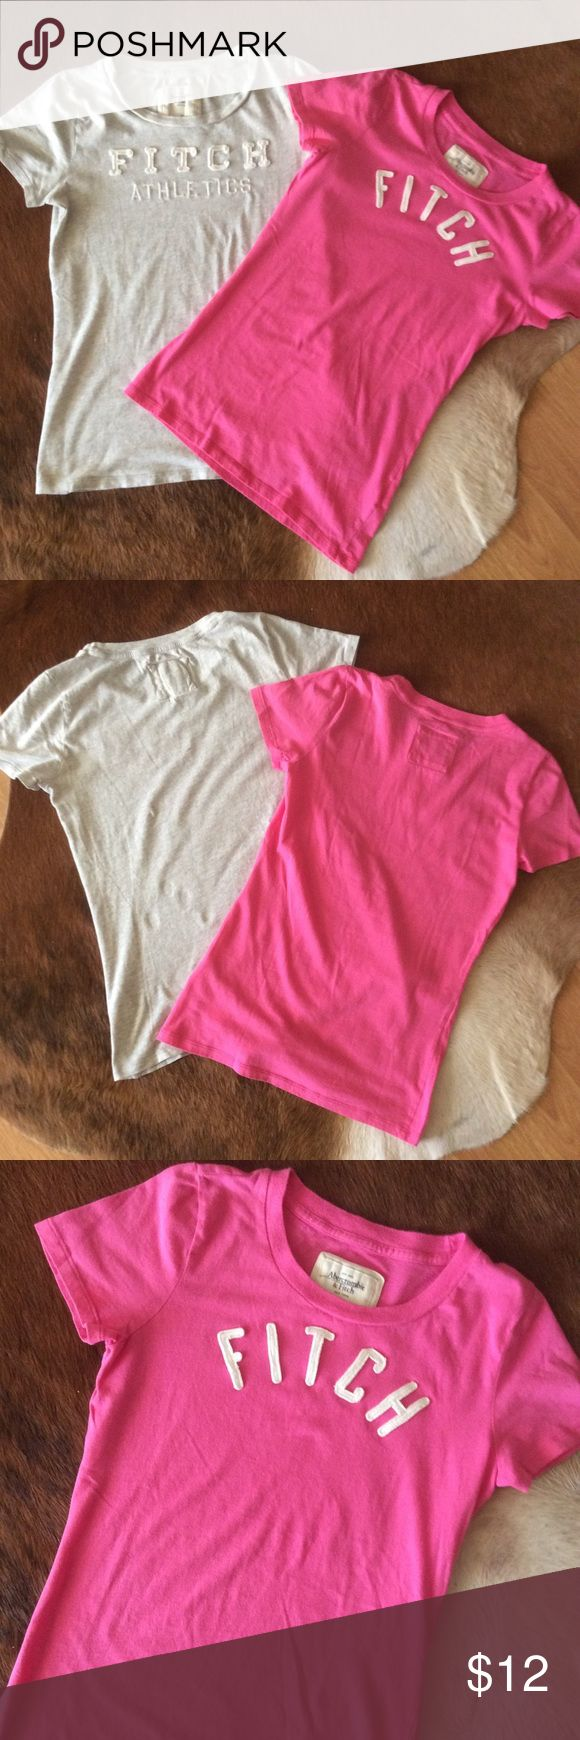 Abercrombie and Fitch two t-shirts  in size:M Very comfortable and super soft thirst by Abercrombie and Fitch in size:M selling as a bundle together! No stains..., elc.  Great condition, a lots of life... Abercrombie & Fitch Tops Tees - Short Sleeve